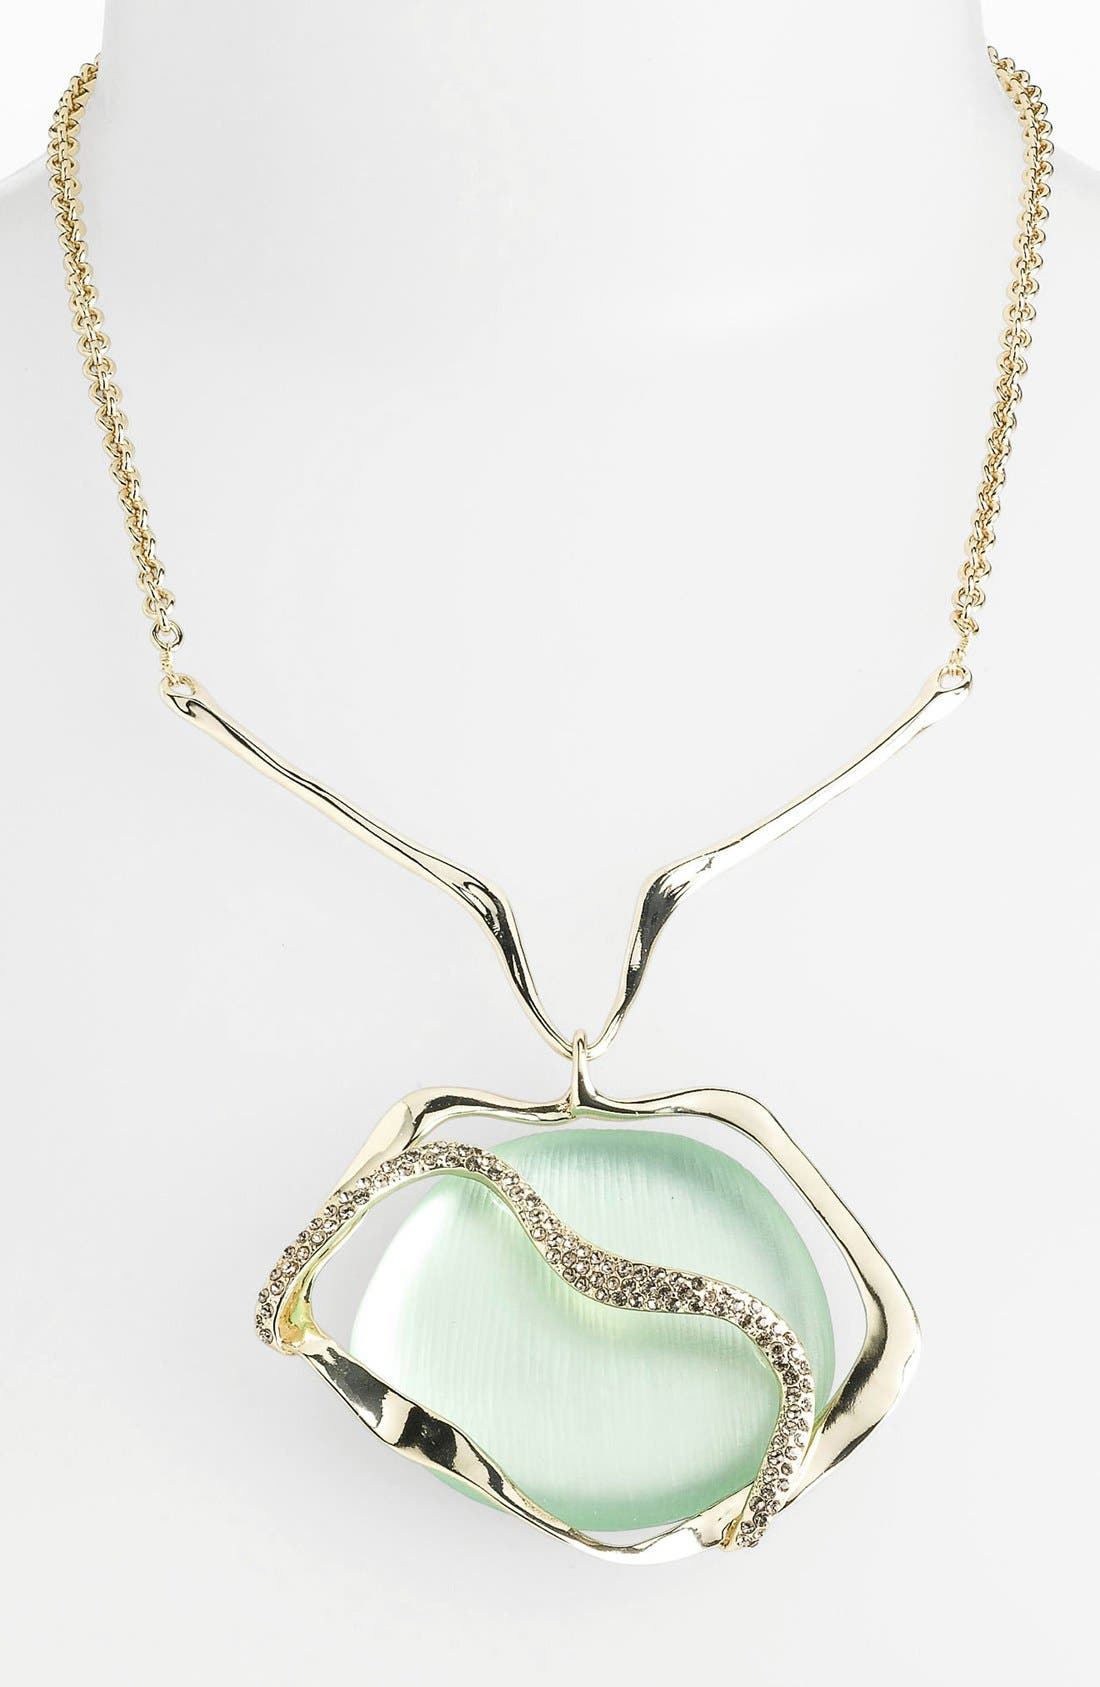 Main Image - Alexis Bittar 'Mod' Frontal Necklace